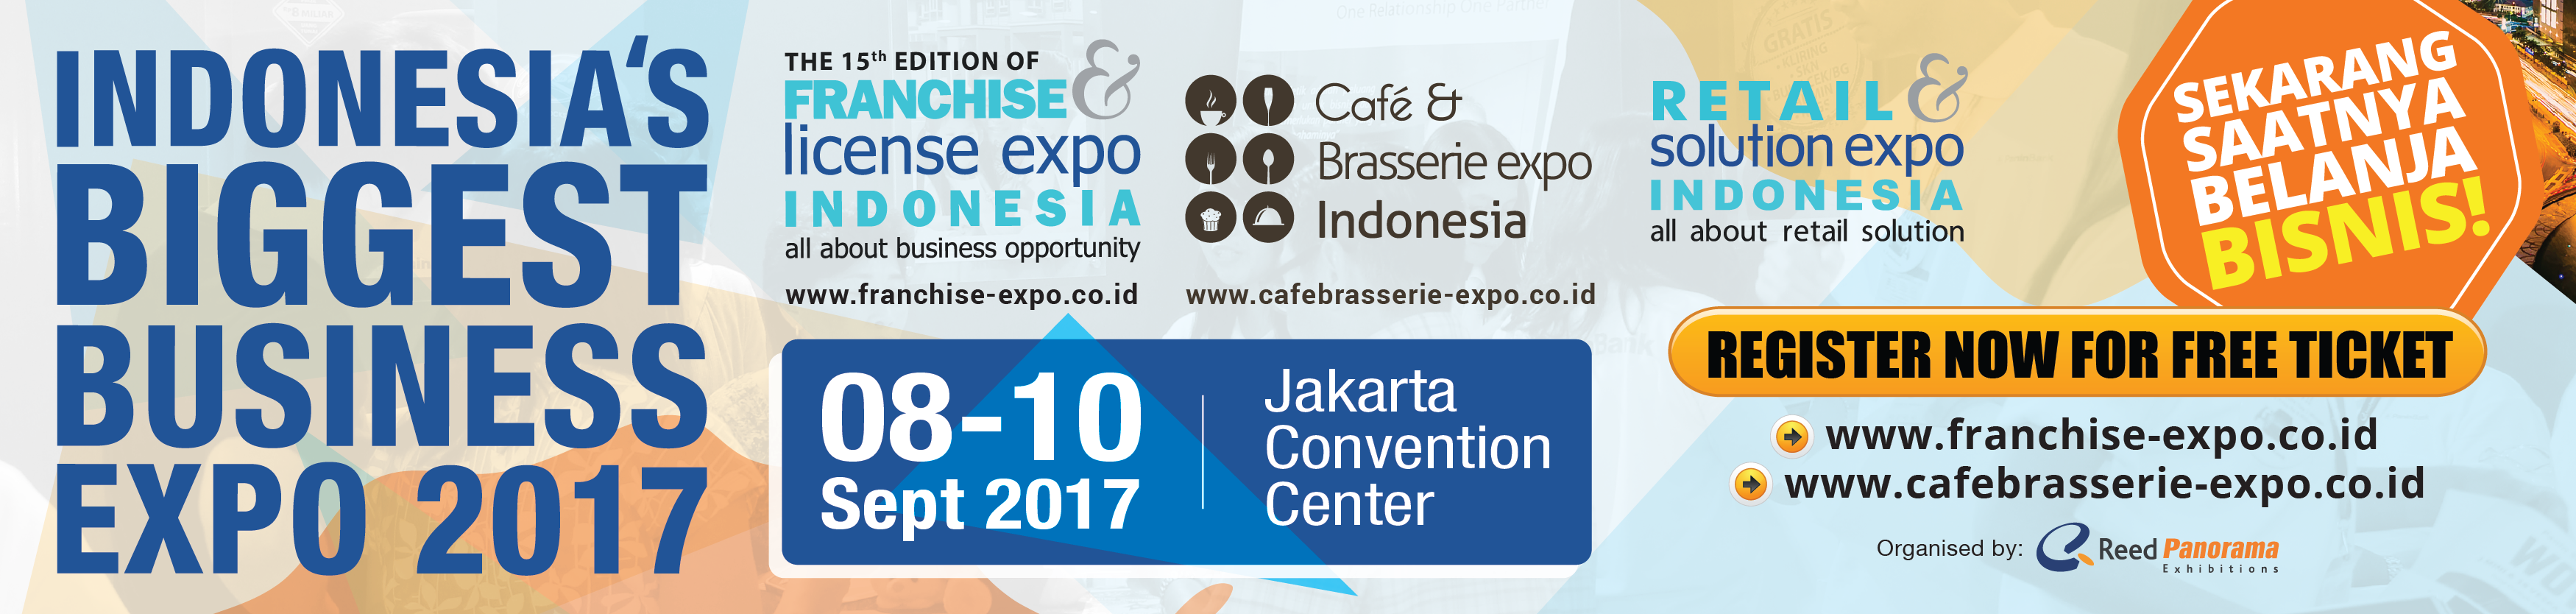 Franchise and License Expo Indonesia 2017